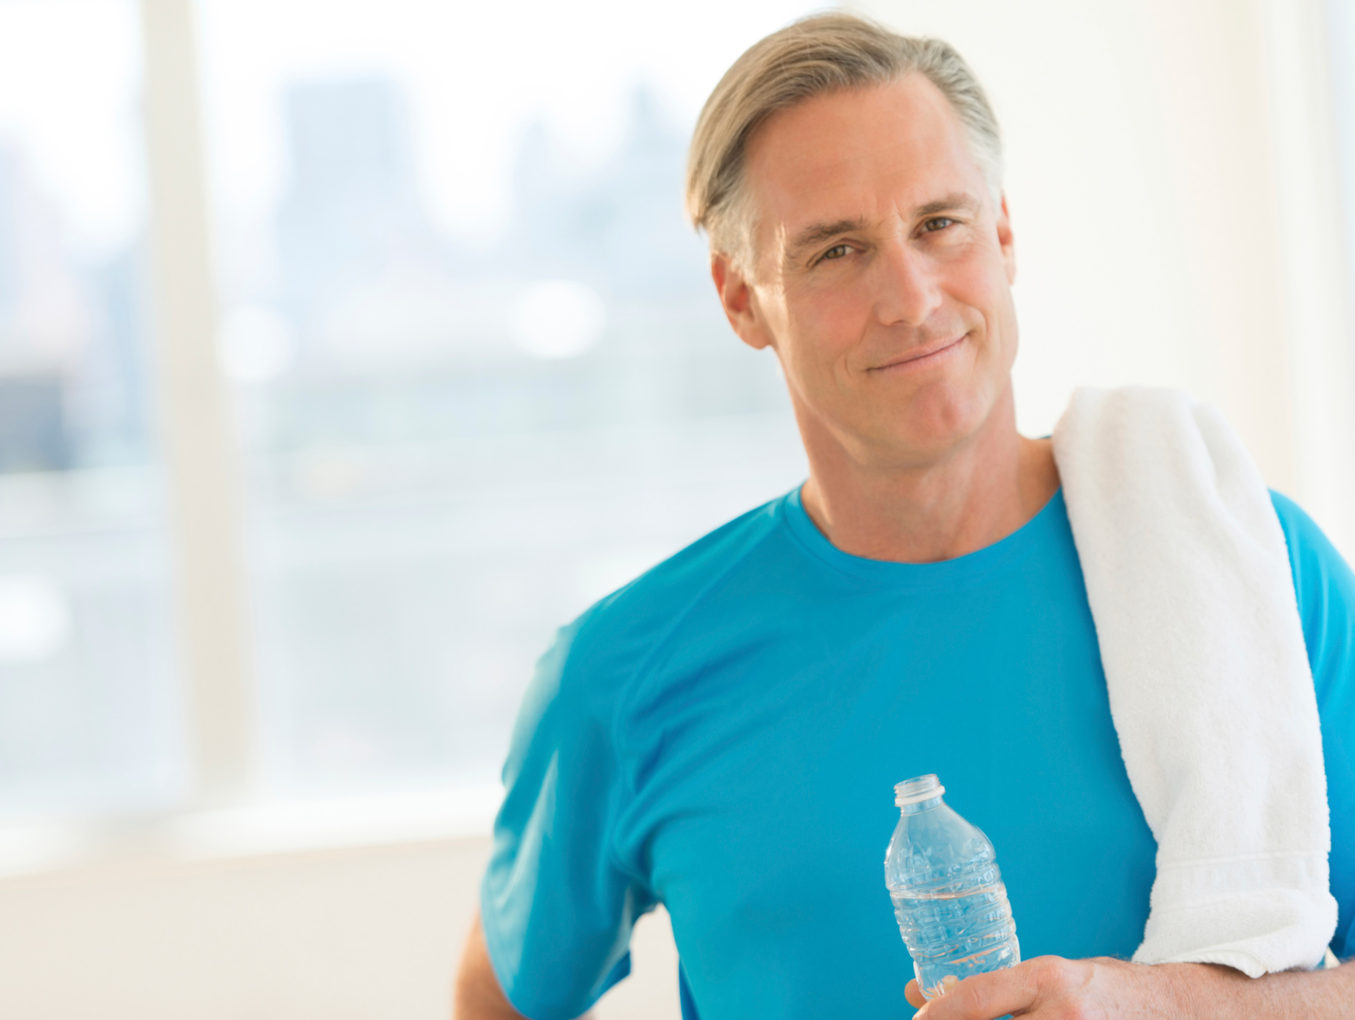 Testosterone therapy: Potential Benefits and Risks